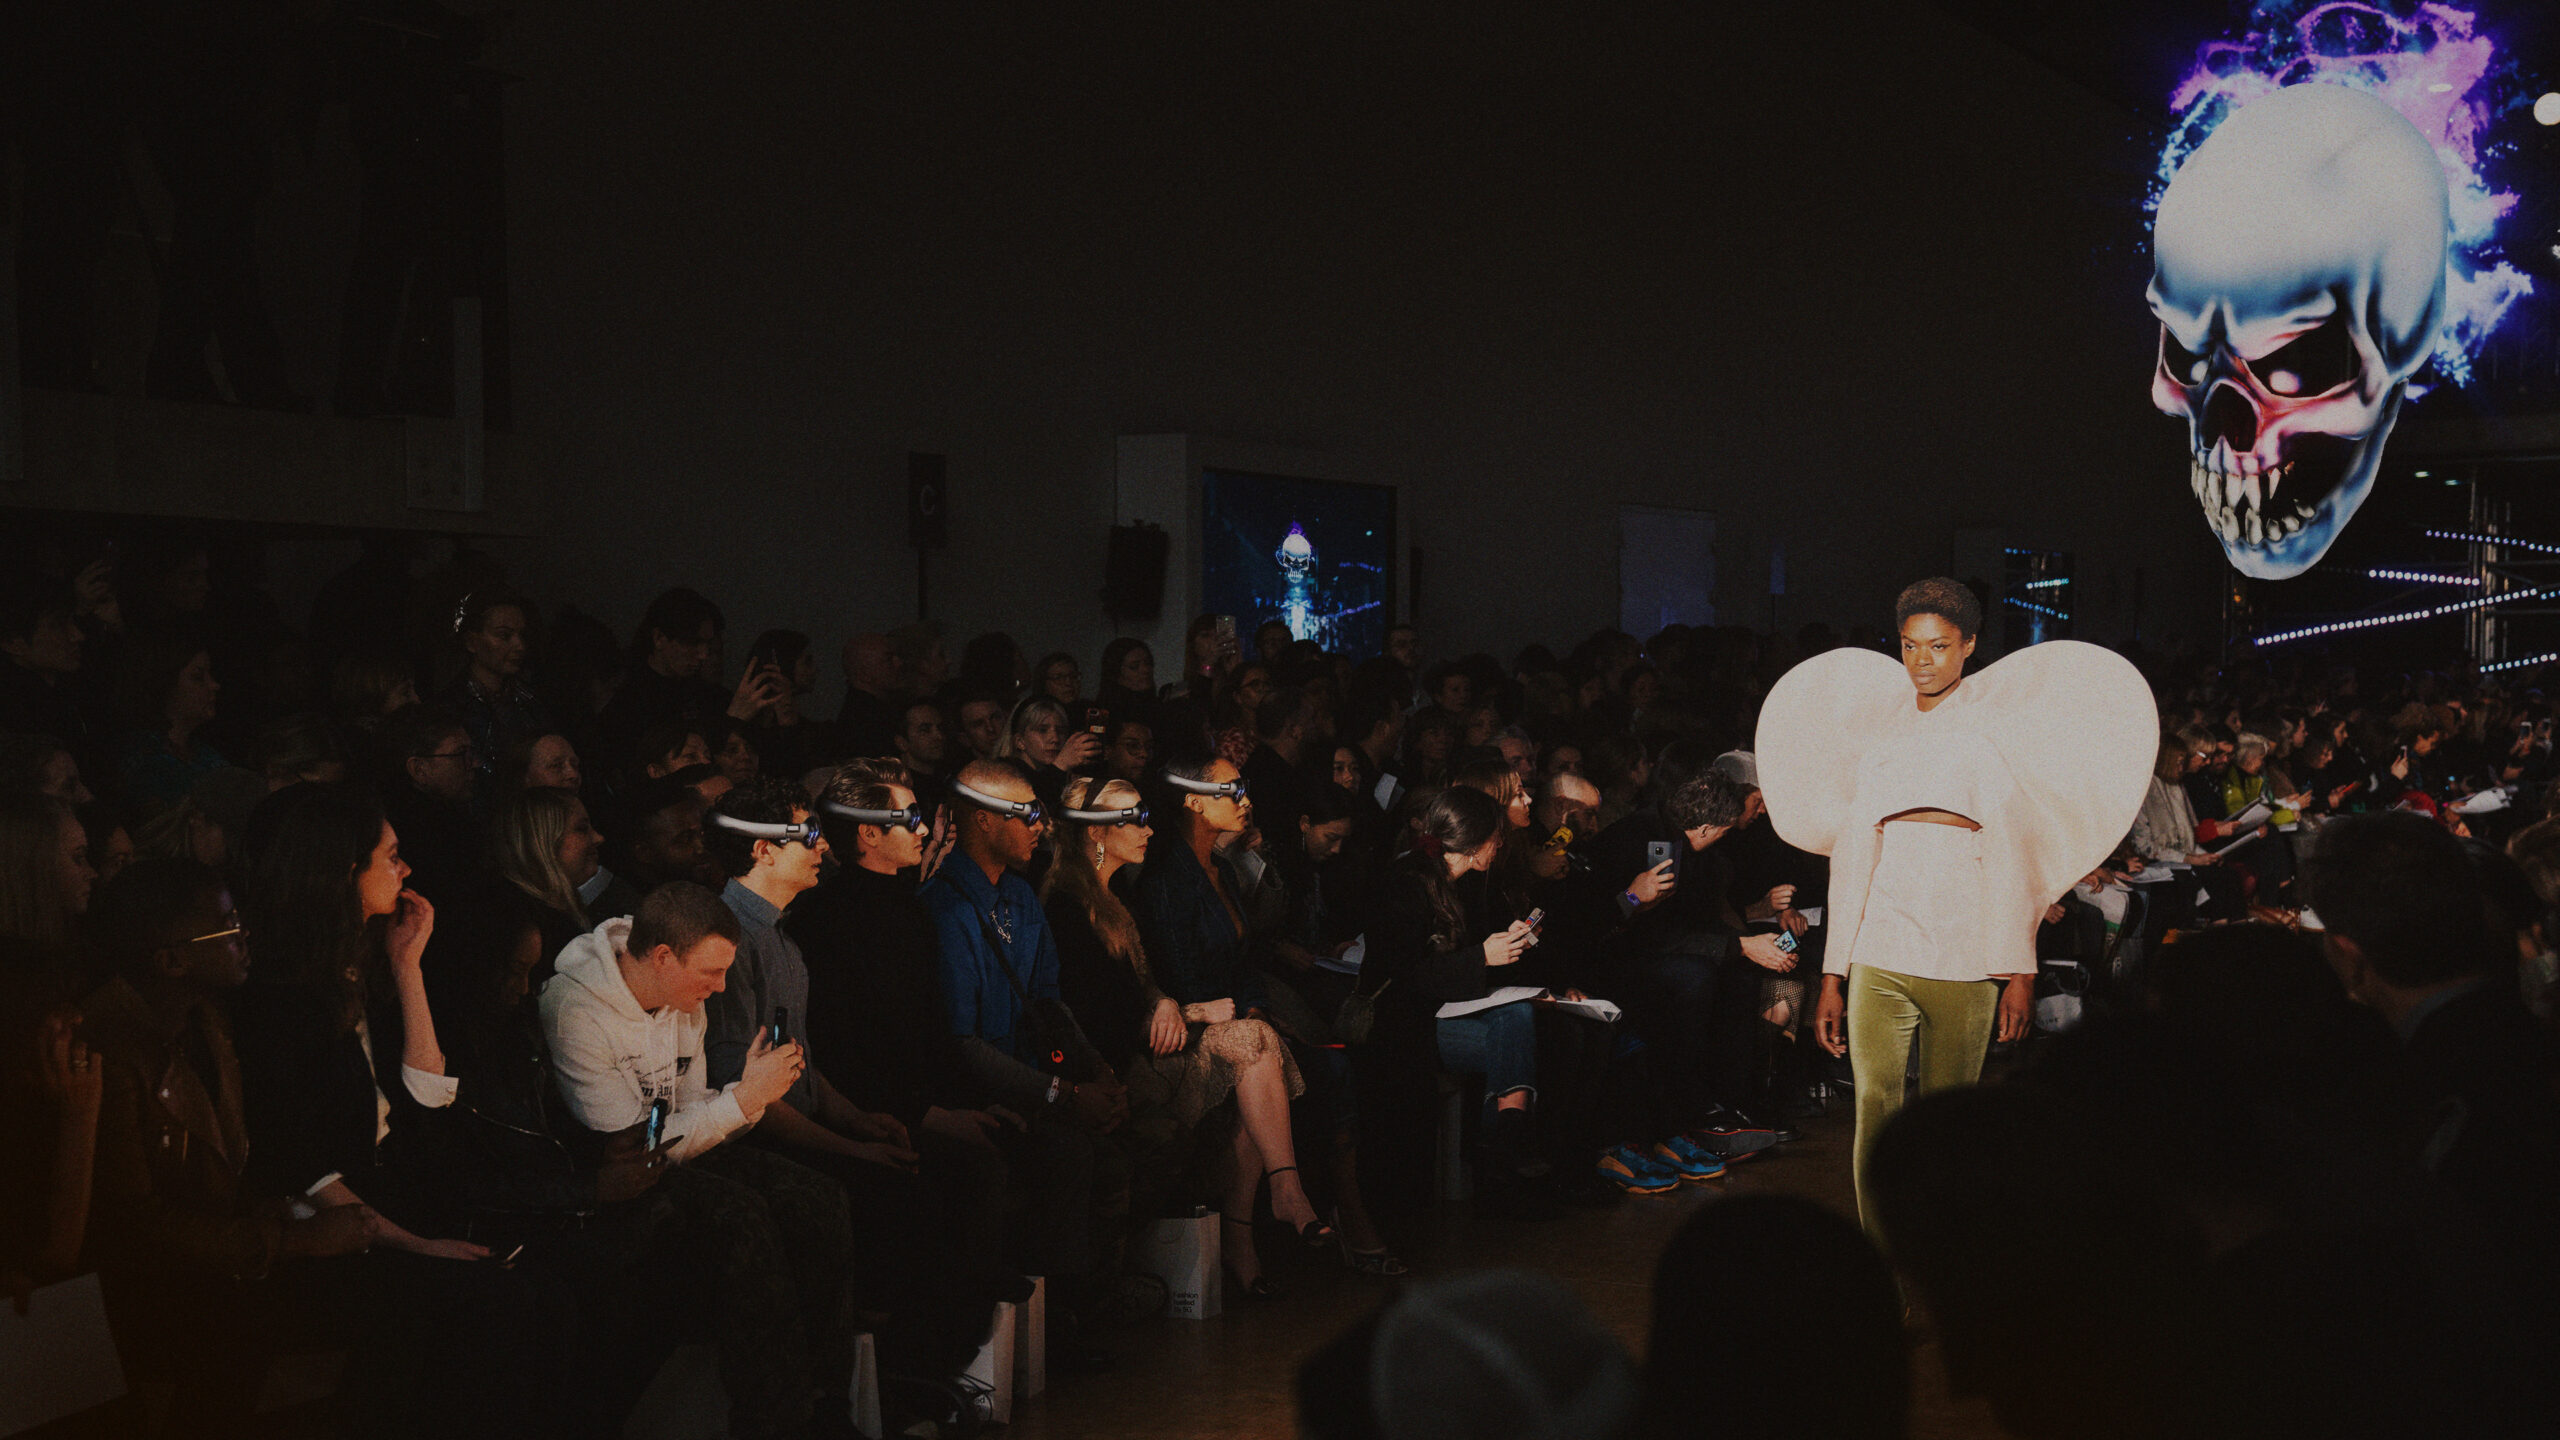 Catwalk show with audience wearing vr headsets